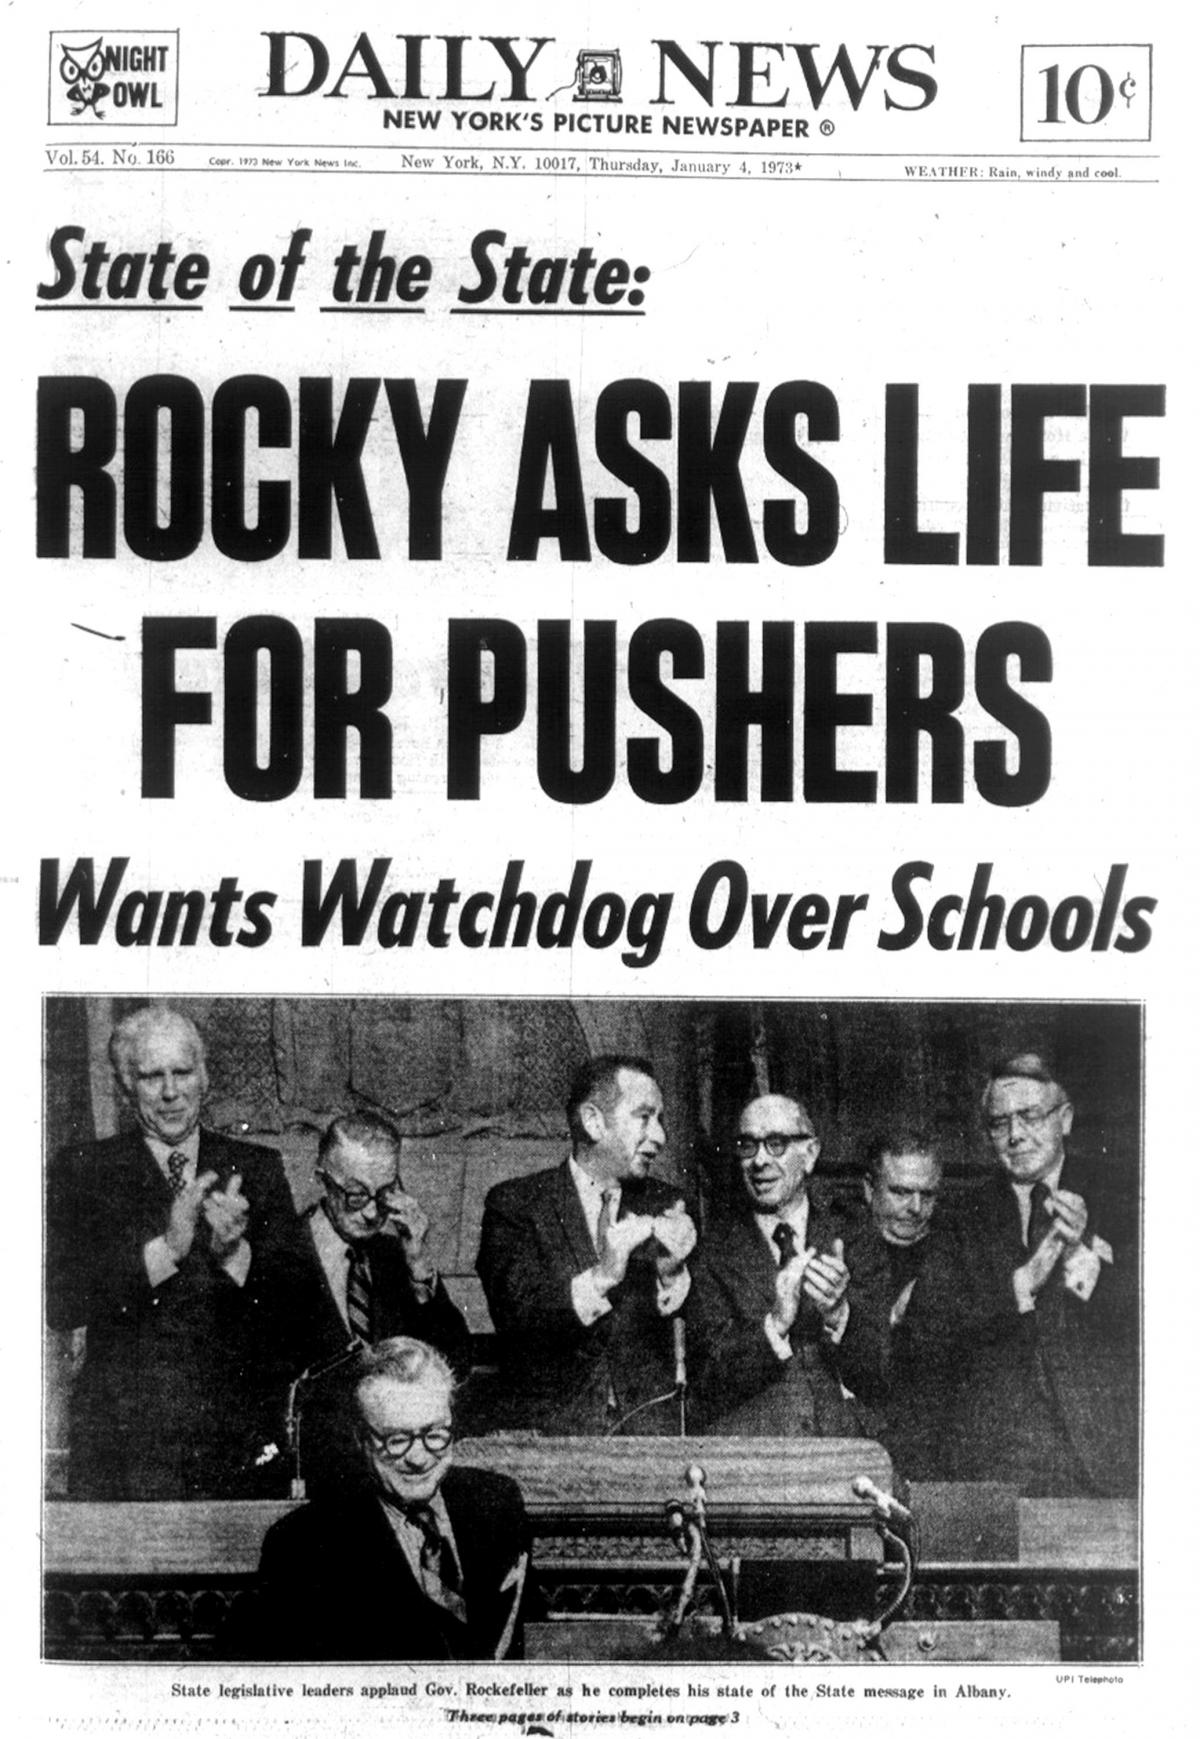 The Jan. 4, 1973, edition of the New York Daily News reports that Gov. Rockefeller's State of the State speech called for a life sentence for drug pushers.